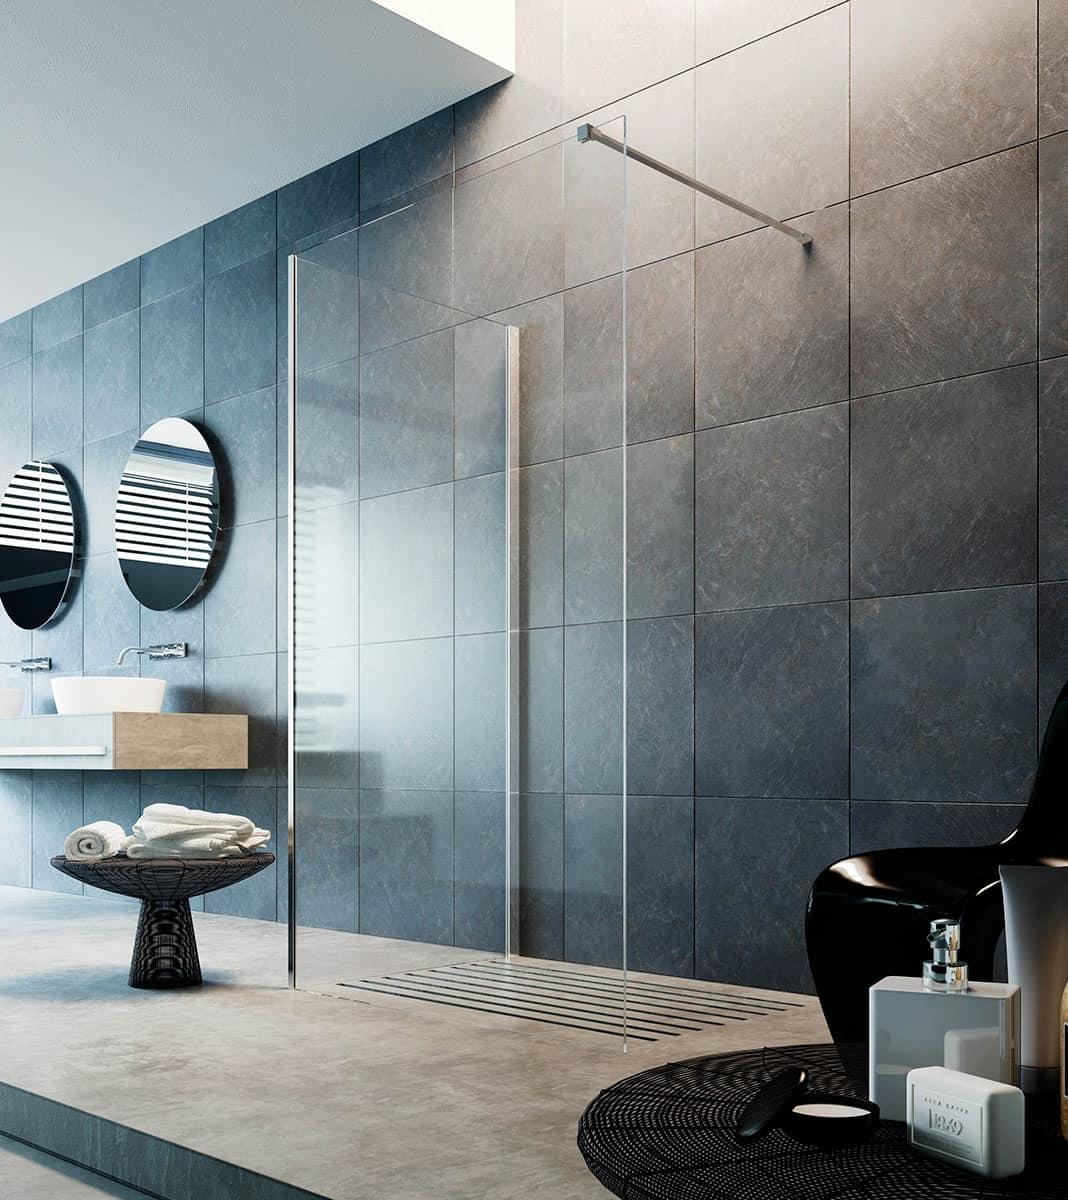 Outstanding Step In Shower Trays Images - Bathtub Ideas - dilata.info